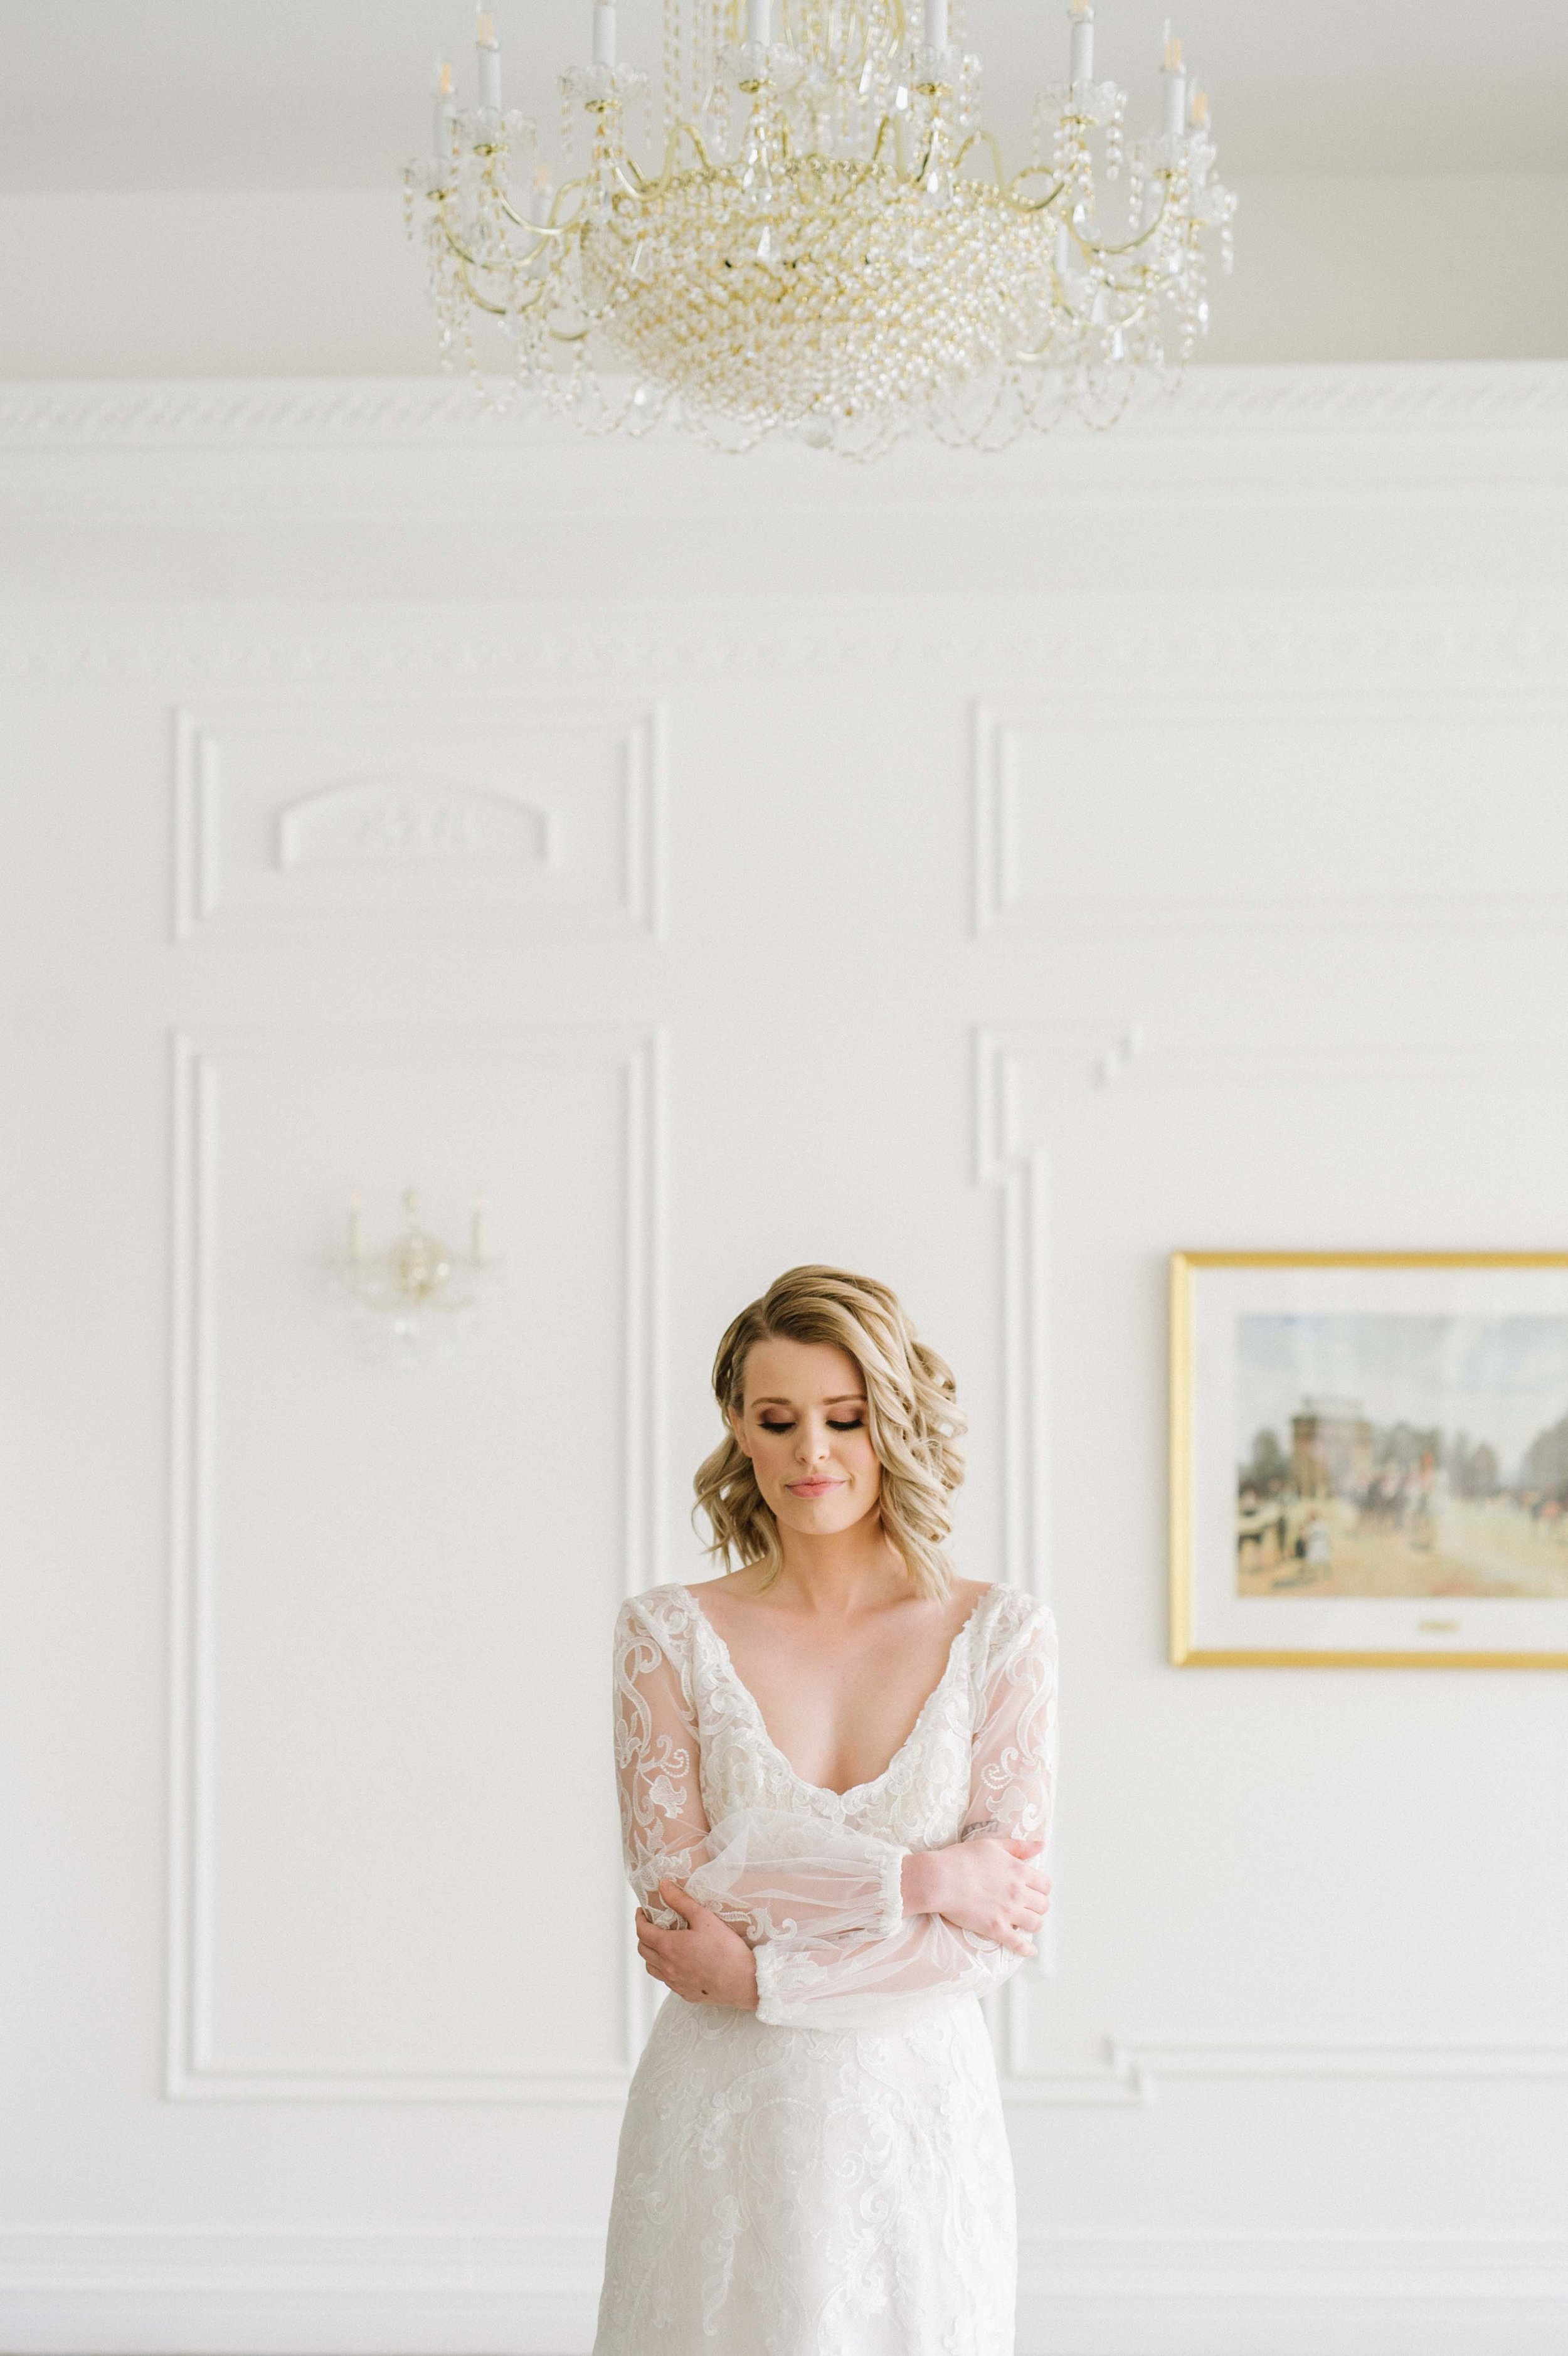 Christy-D-Swanberg-Photography-Calgary-wedding-elopement-18.jpg